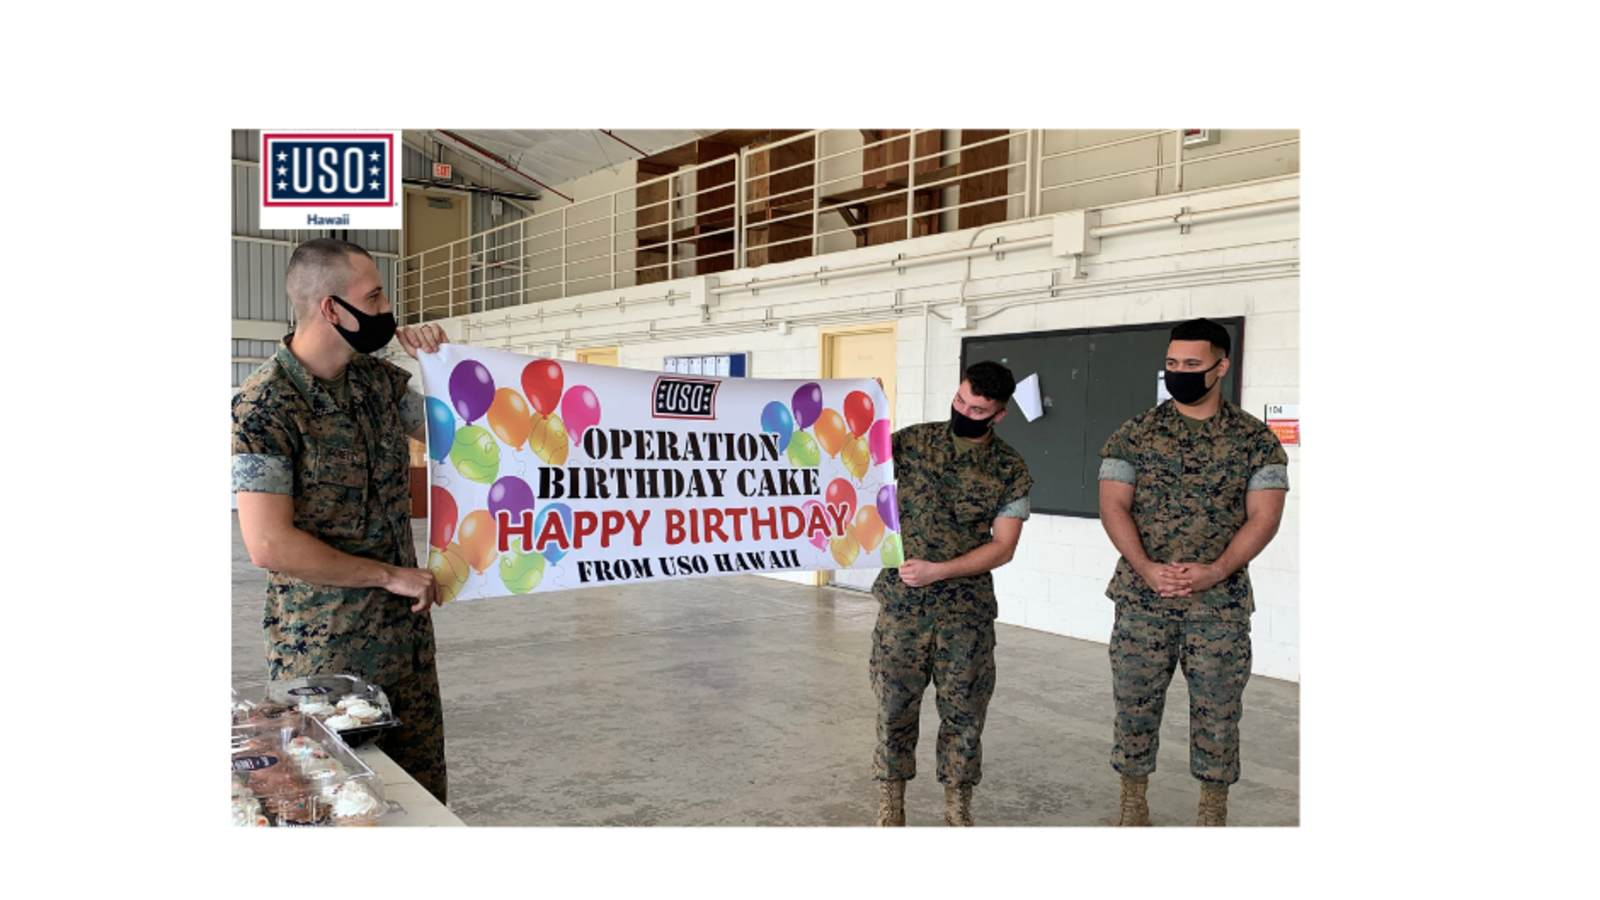 Operation Birthday Cake O USO Hawaii